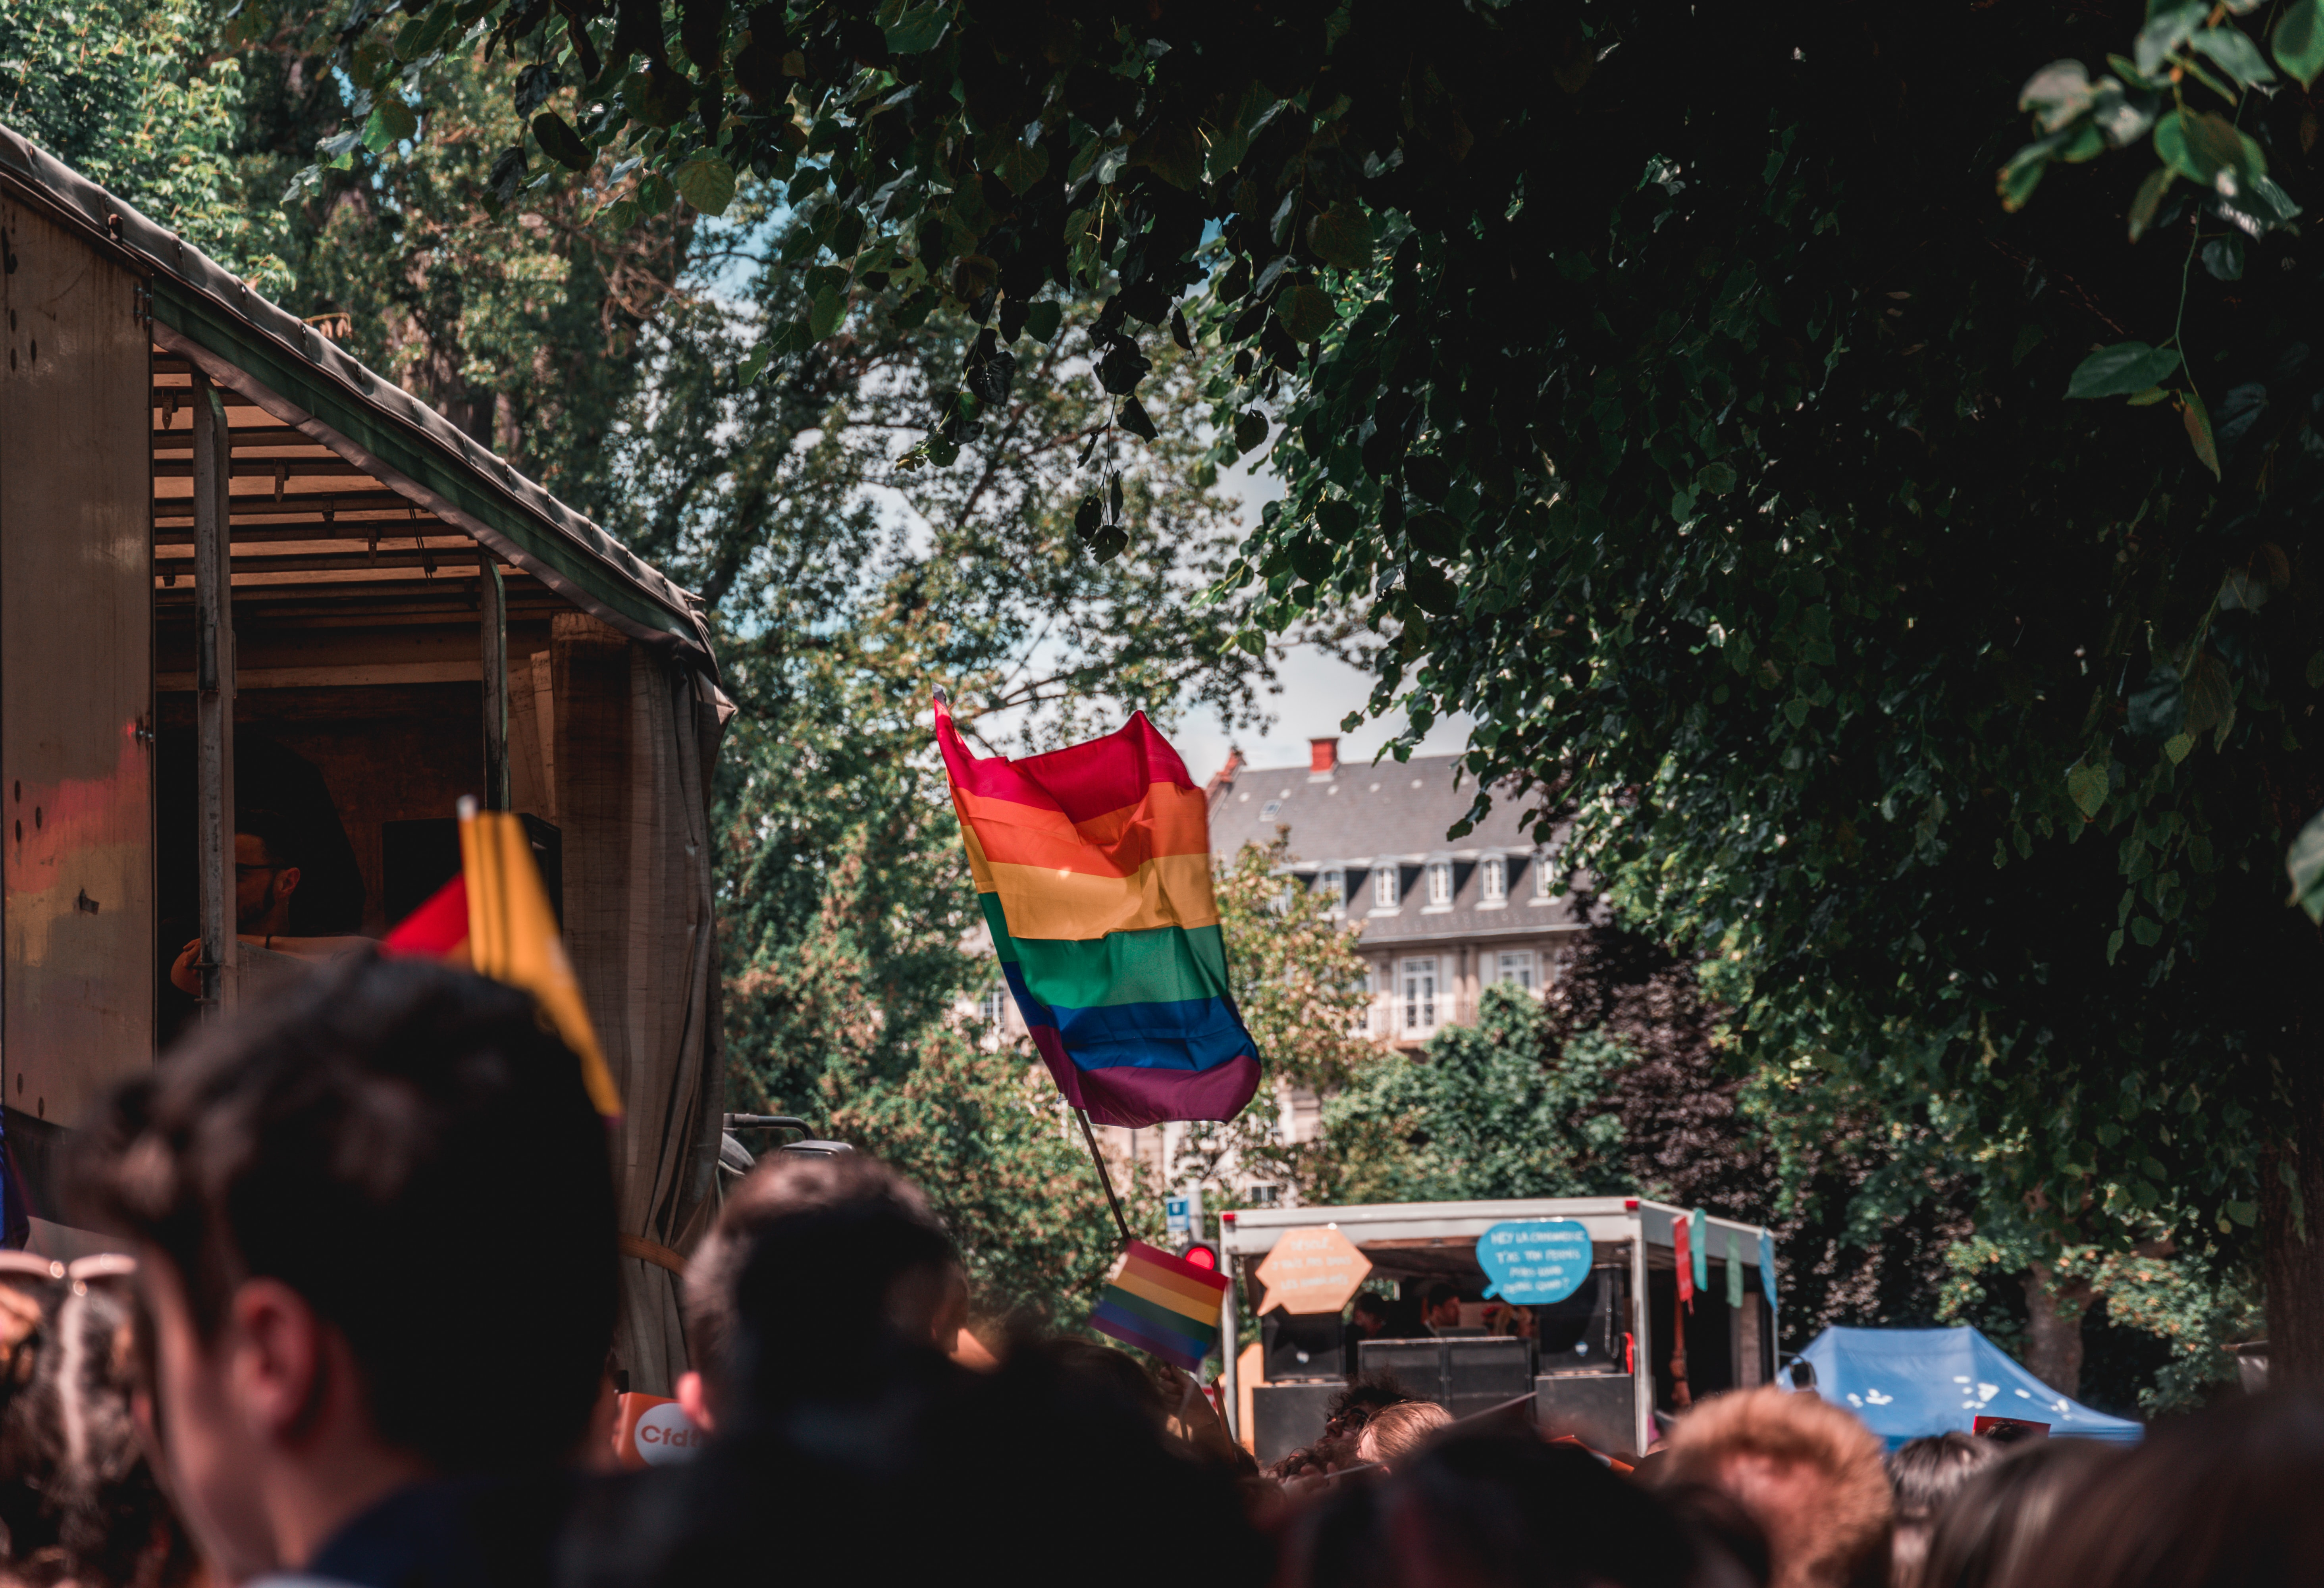 Pride and inclusion: looking beyond the '#'s